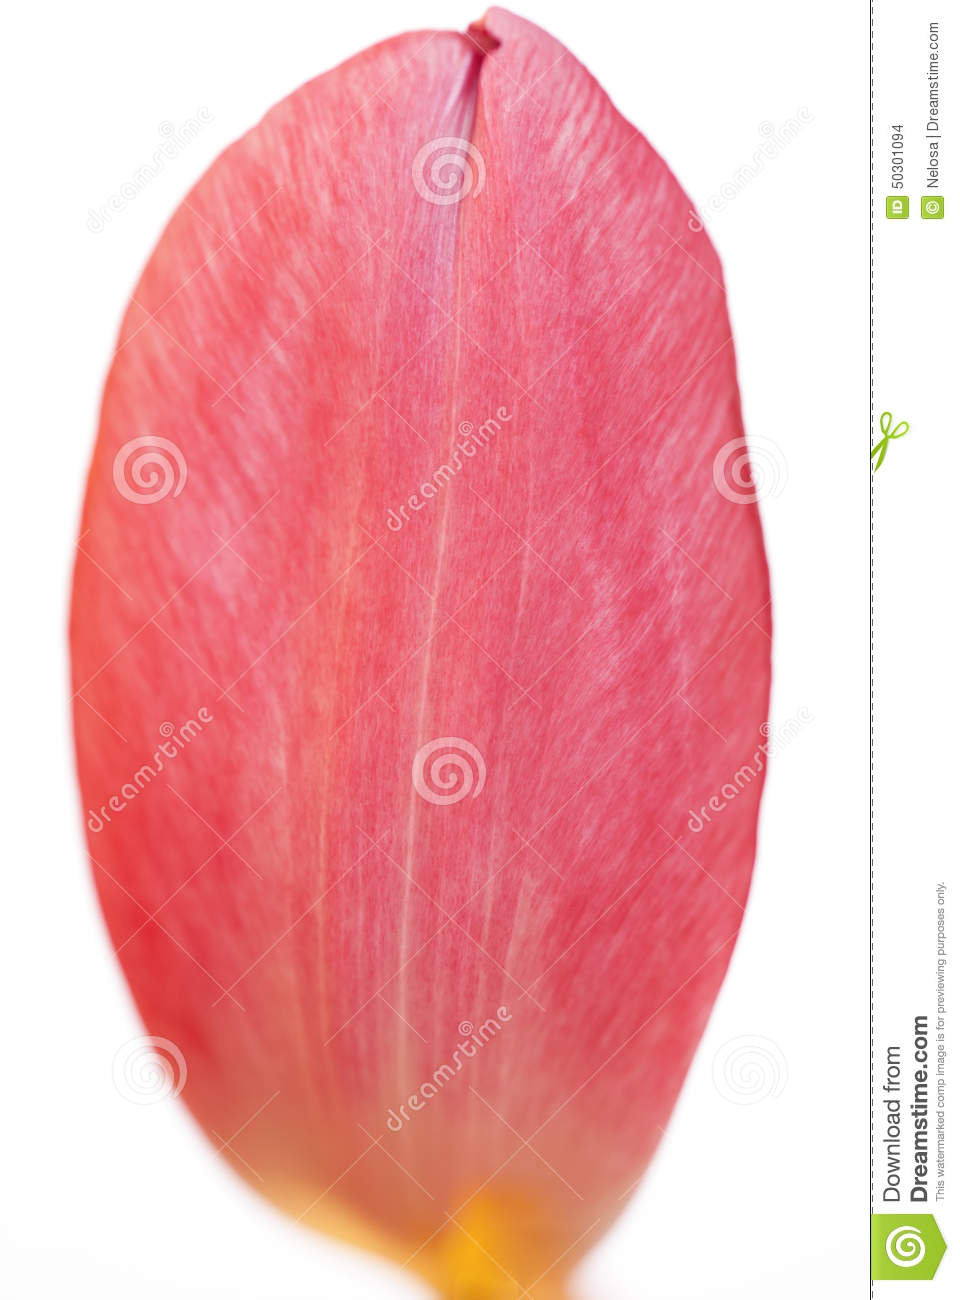 Petal Dream Off Hair Beauty Beauty Advertising Poster: Close Up Of One Tulip Petal Stock Photo